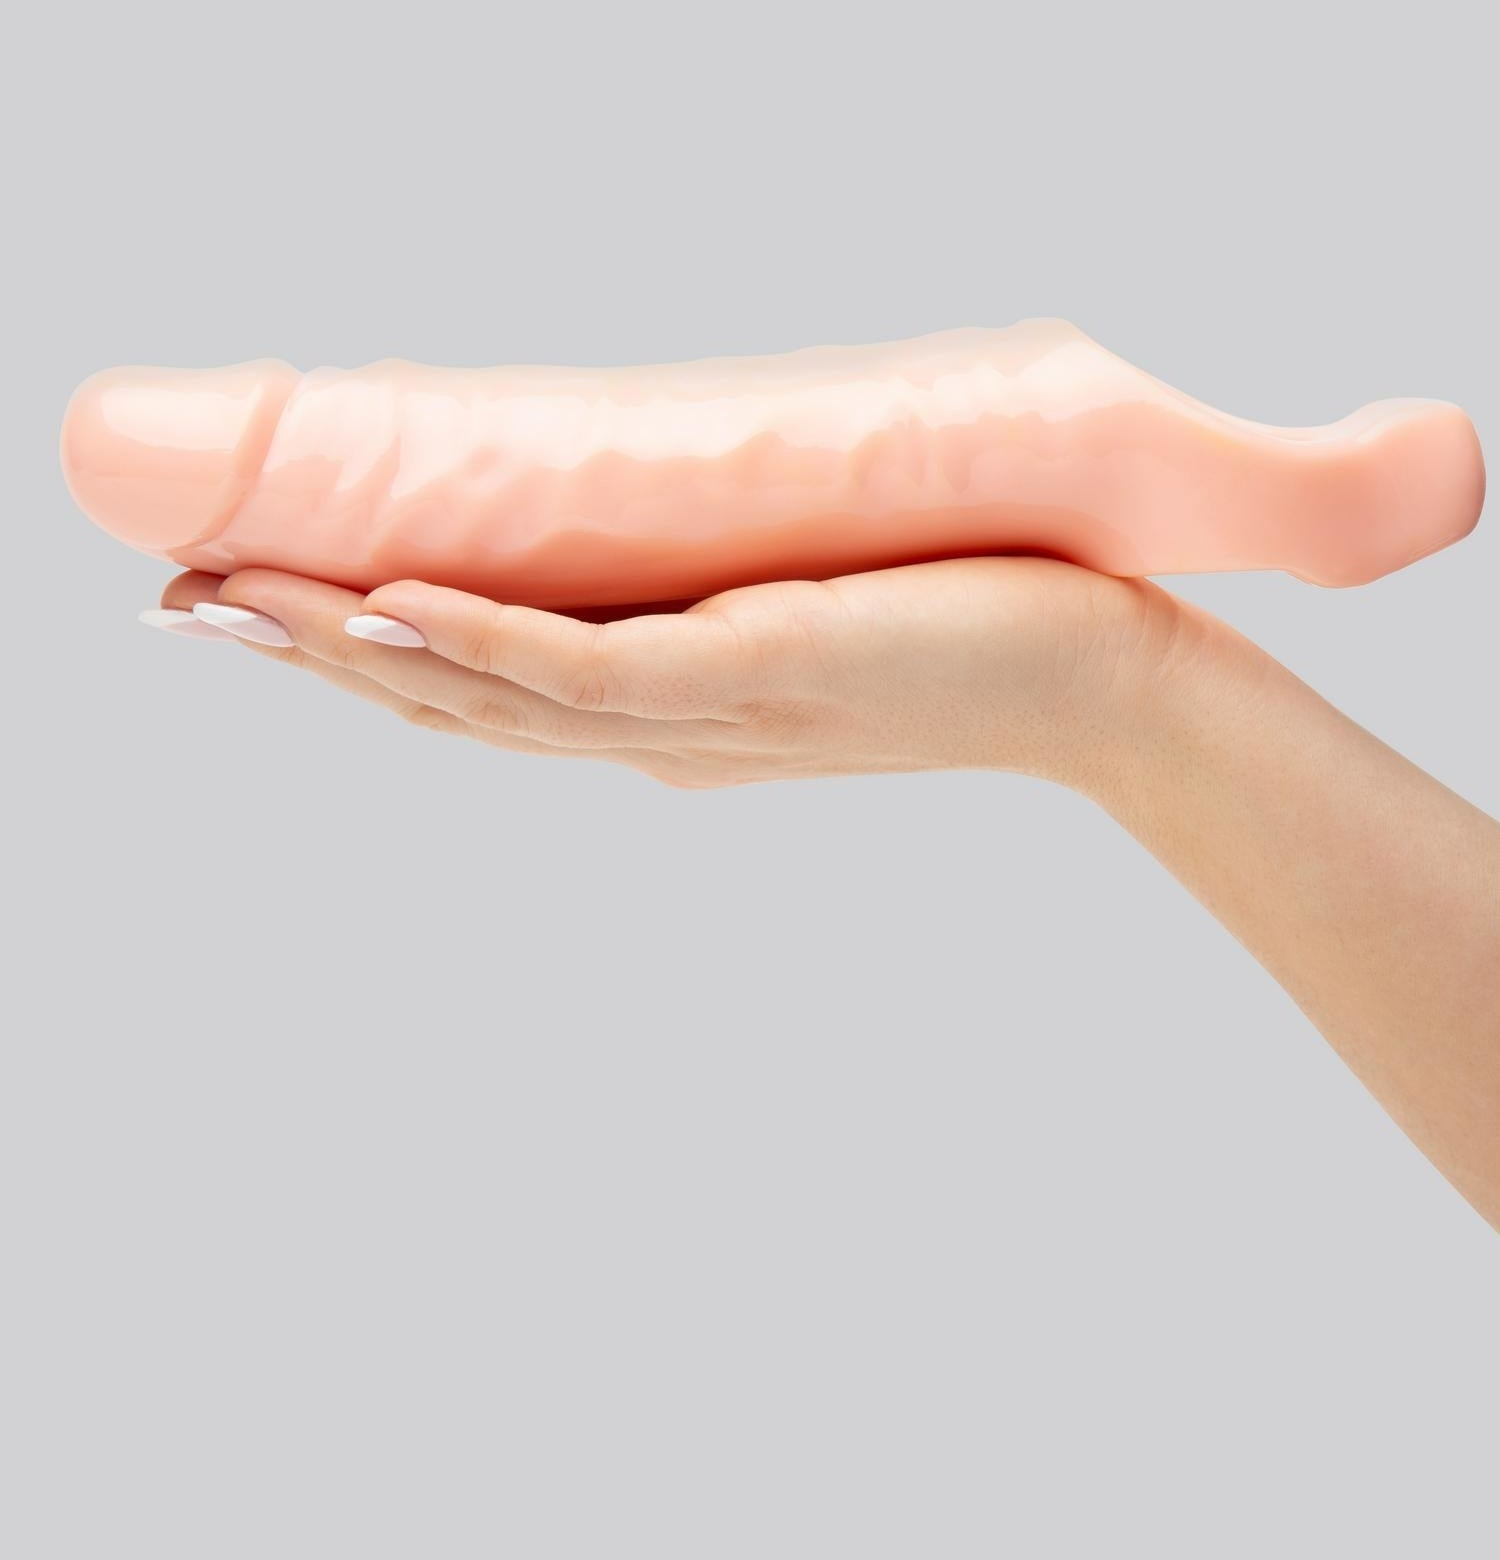 hand holding a penis-like toy with a cavity in it for slipping a penis into